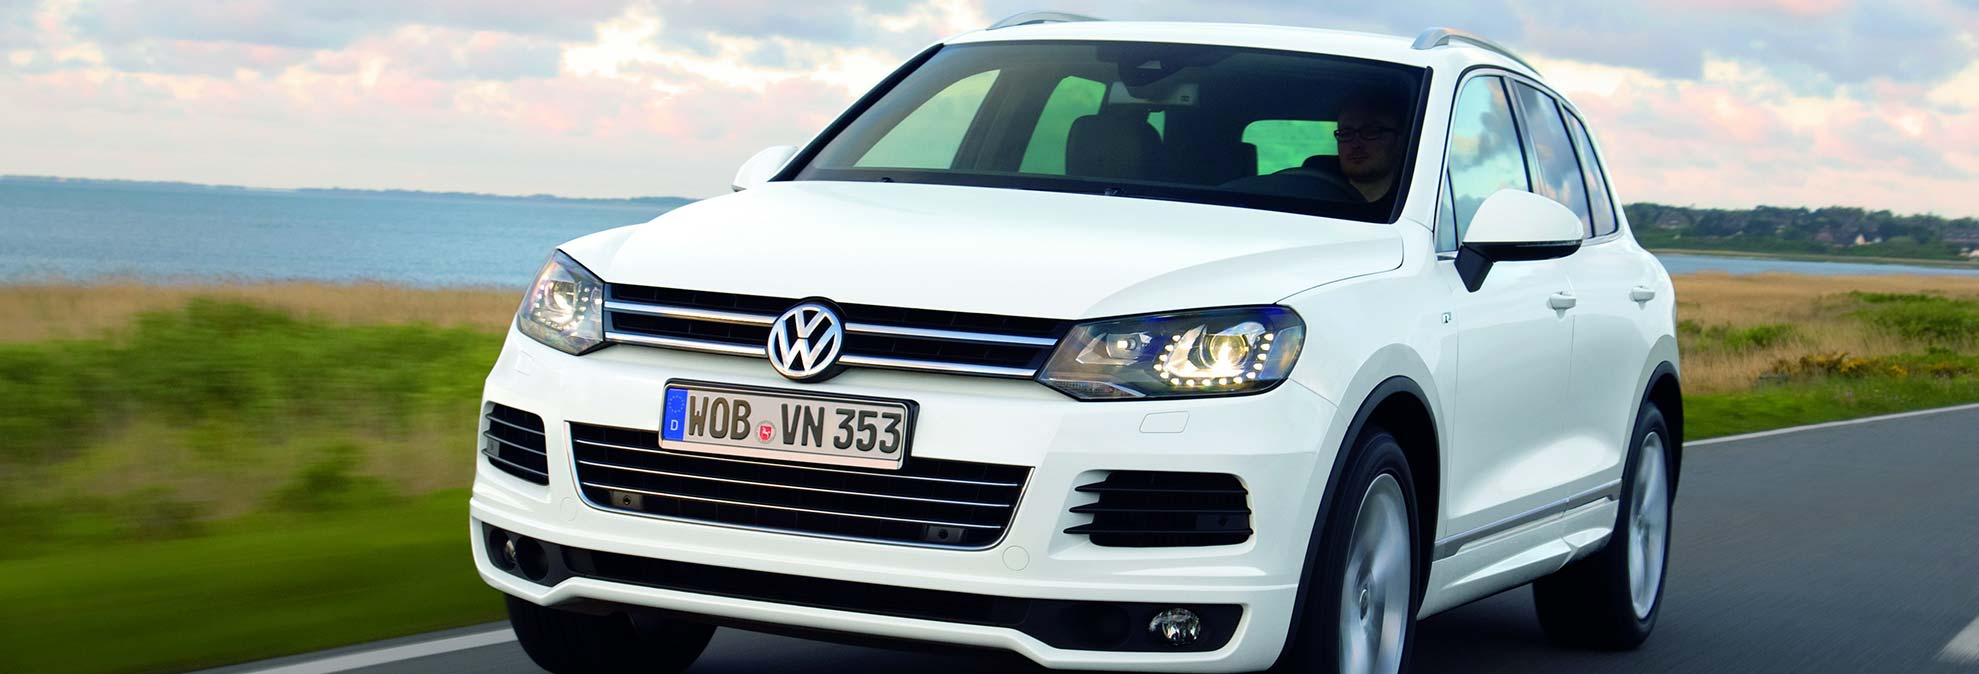 touareg days cost also drivetrain price specs vw volkswagen review release car